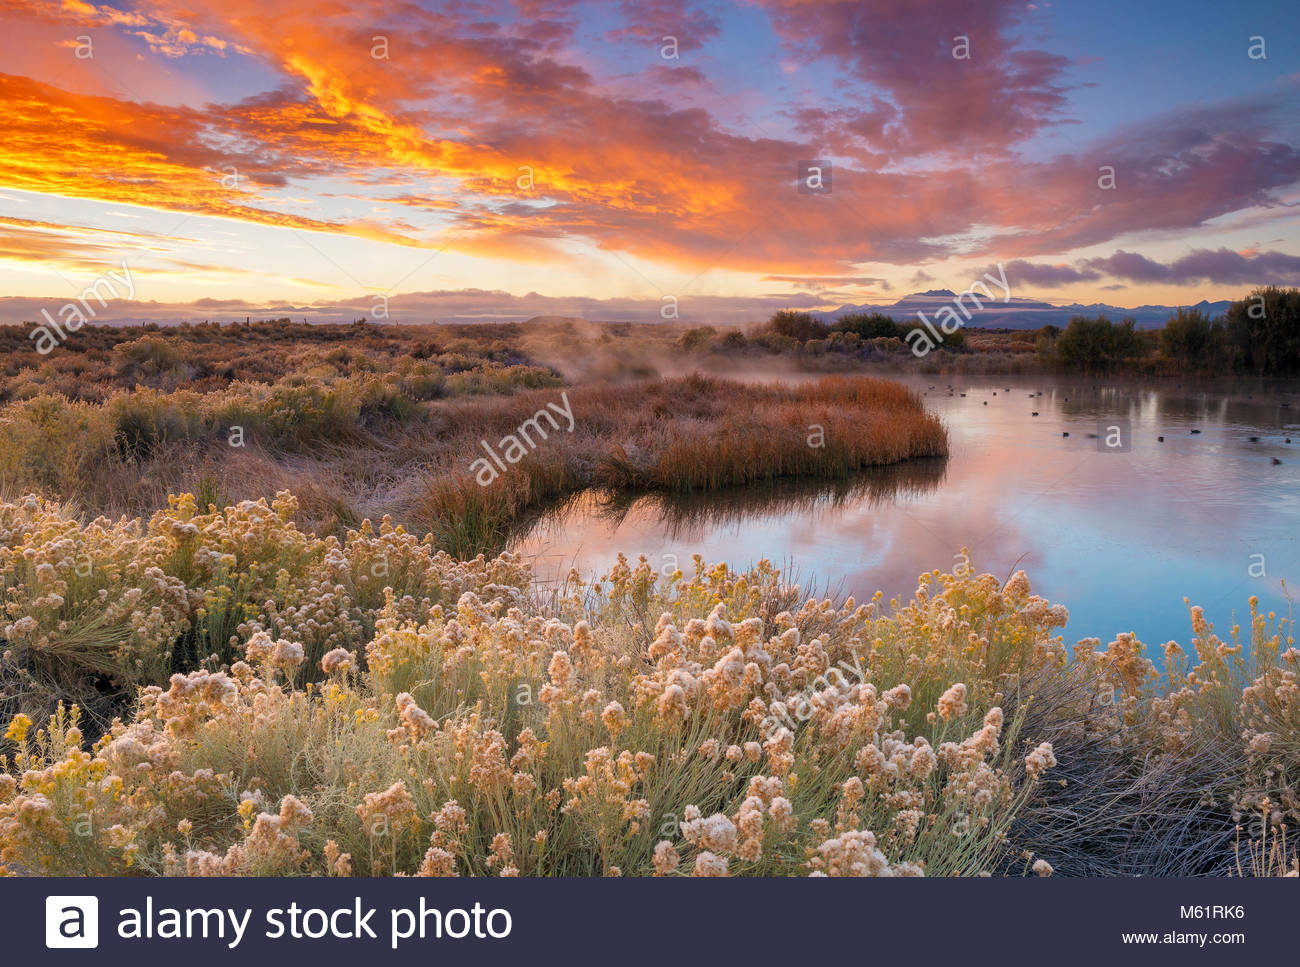 Dawn, Rabbitbrush, Warm Springs, Mono Basin National Forest Scenic Area, Inyo National Forest, California - Stock Image